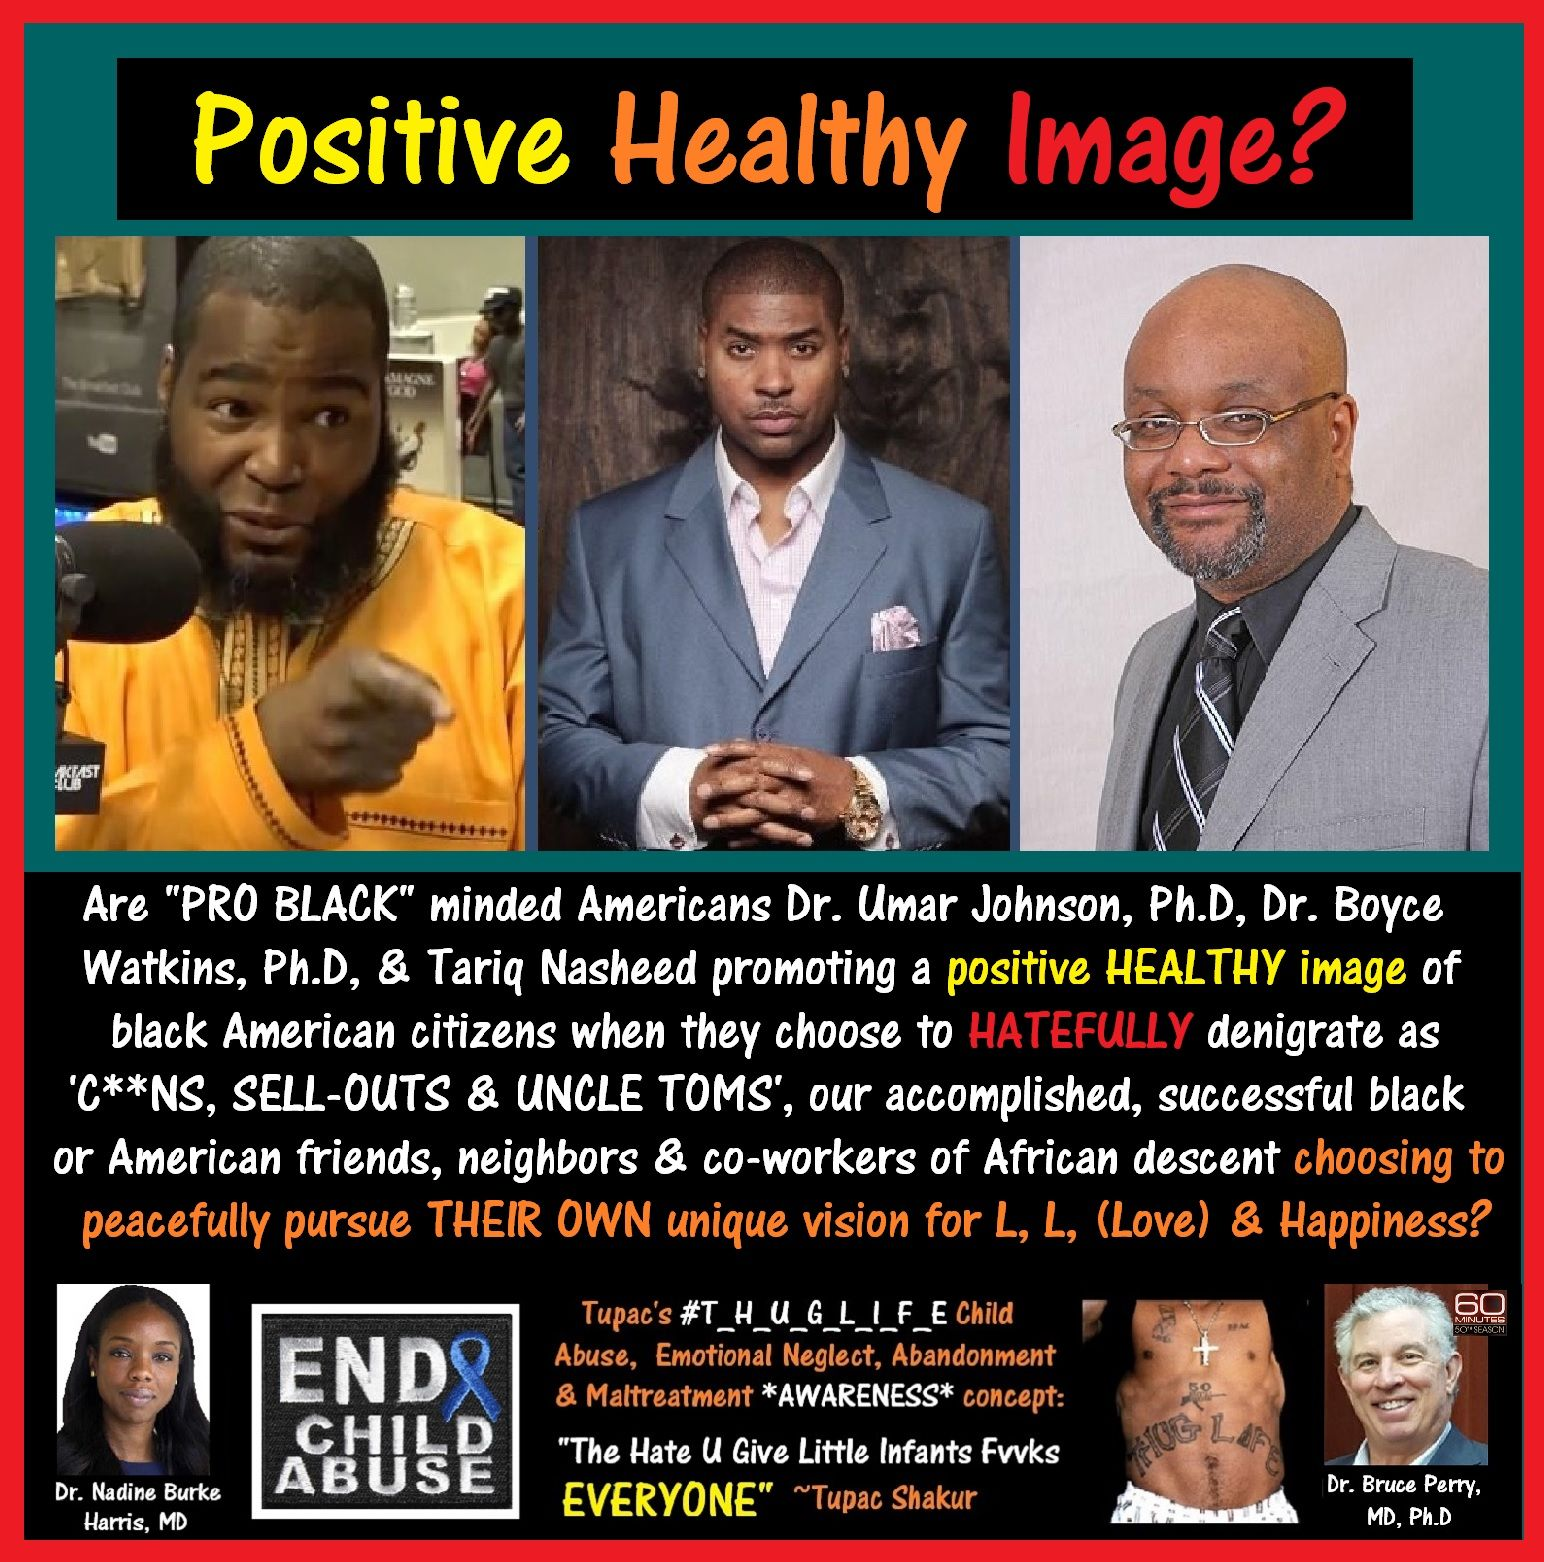 Dr. Umar Johnson Ph.D, Dr. Boyce Watkins Ph.D, Tariq Nasheed7.jpg